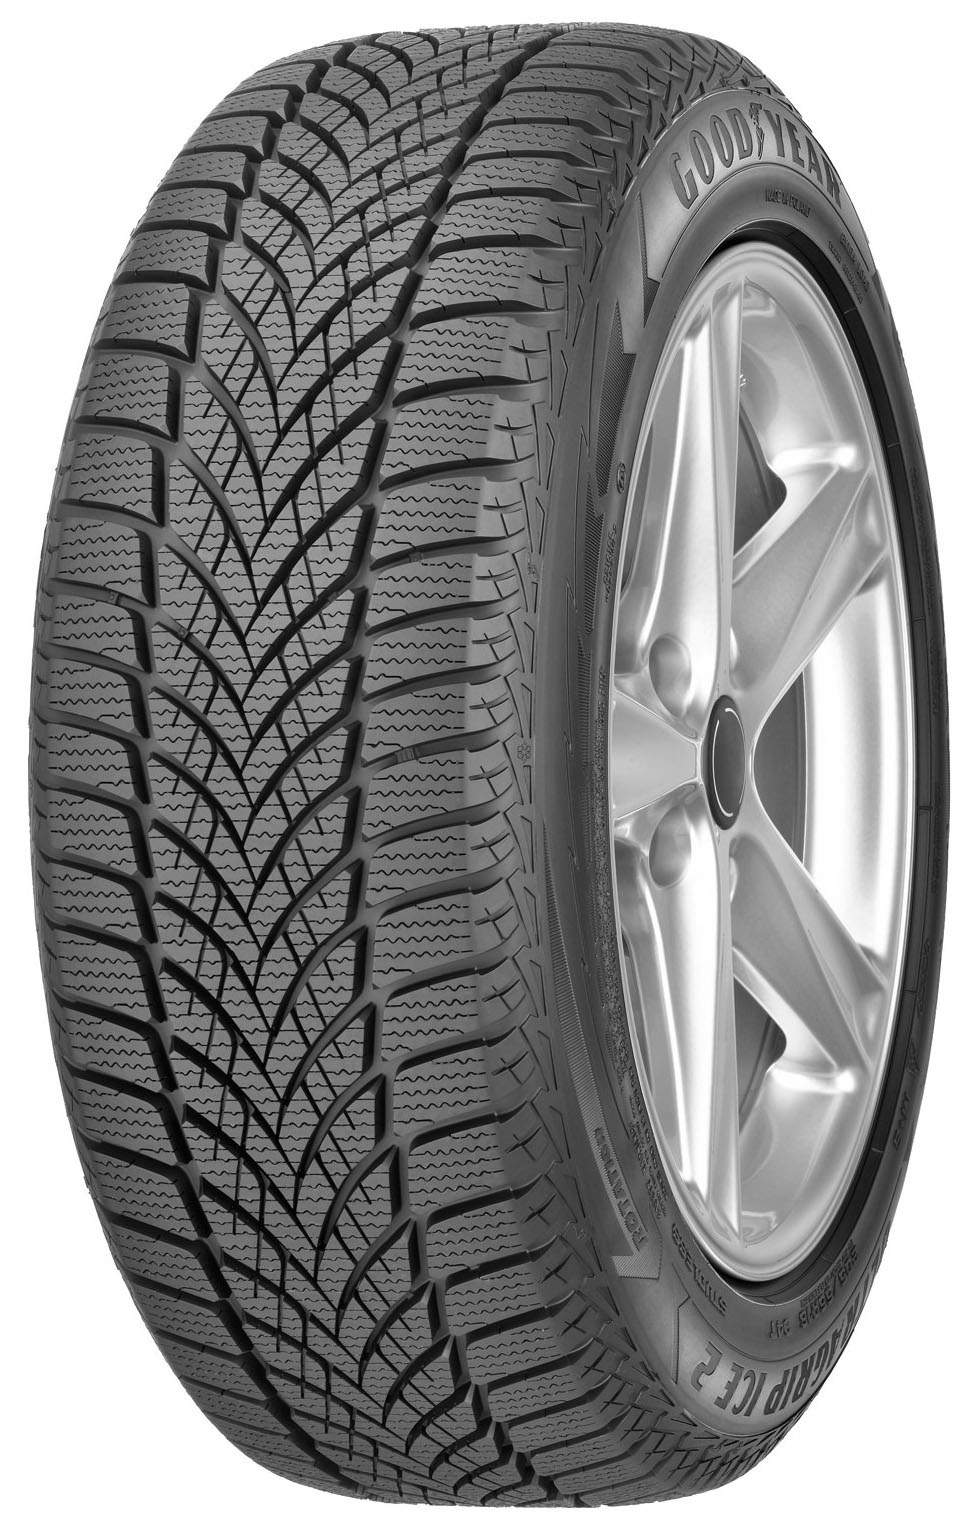 Автошина R16 215/60 Goodyear UltraGrip Ice 2 99T (зима)